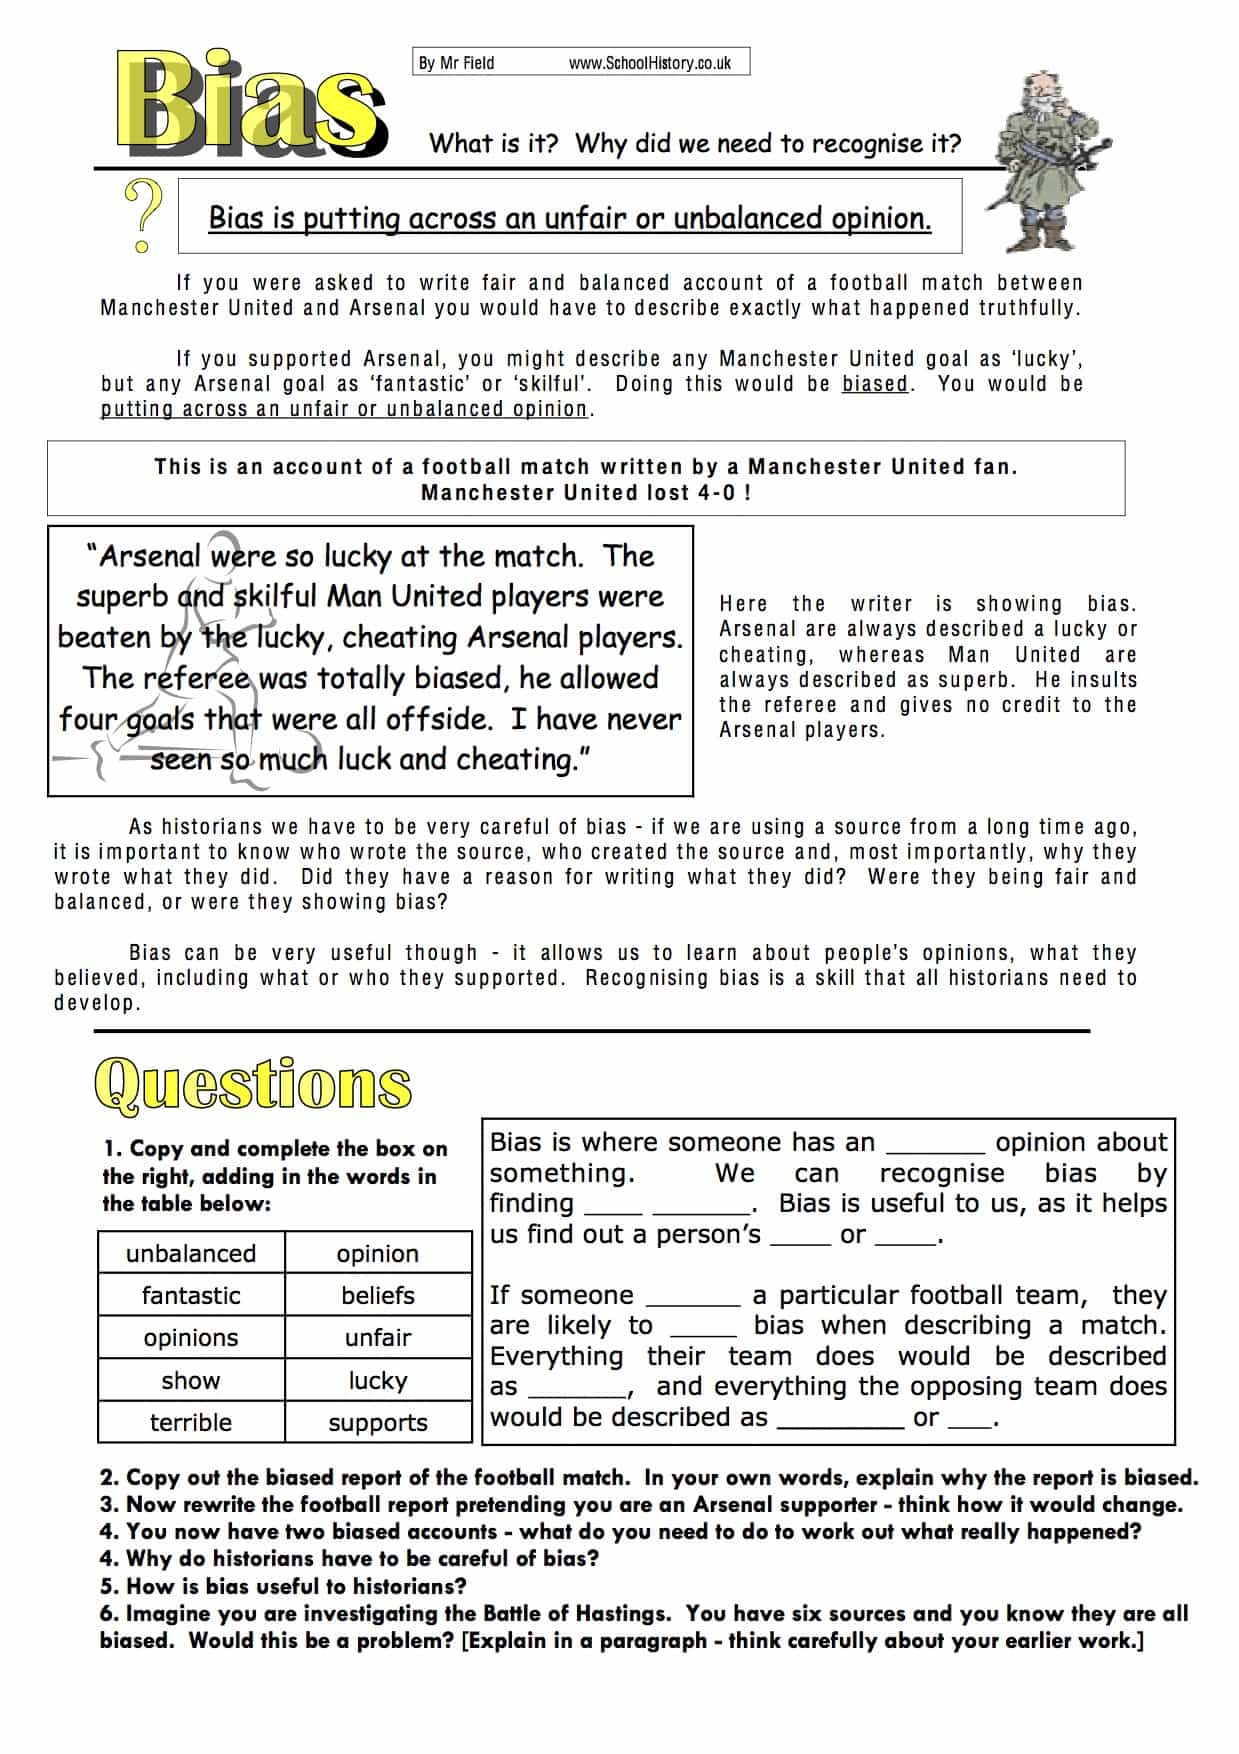 Understanding Bias Study Worksheet | Free PDF Download